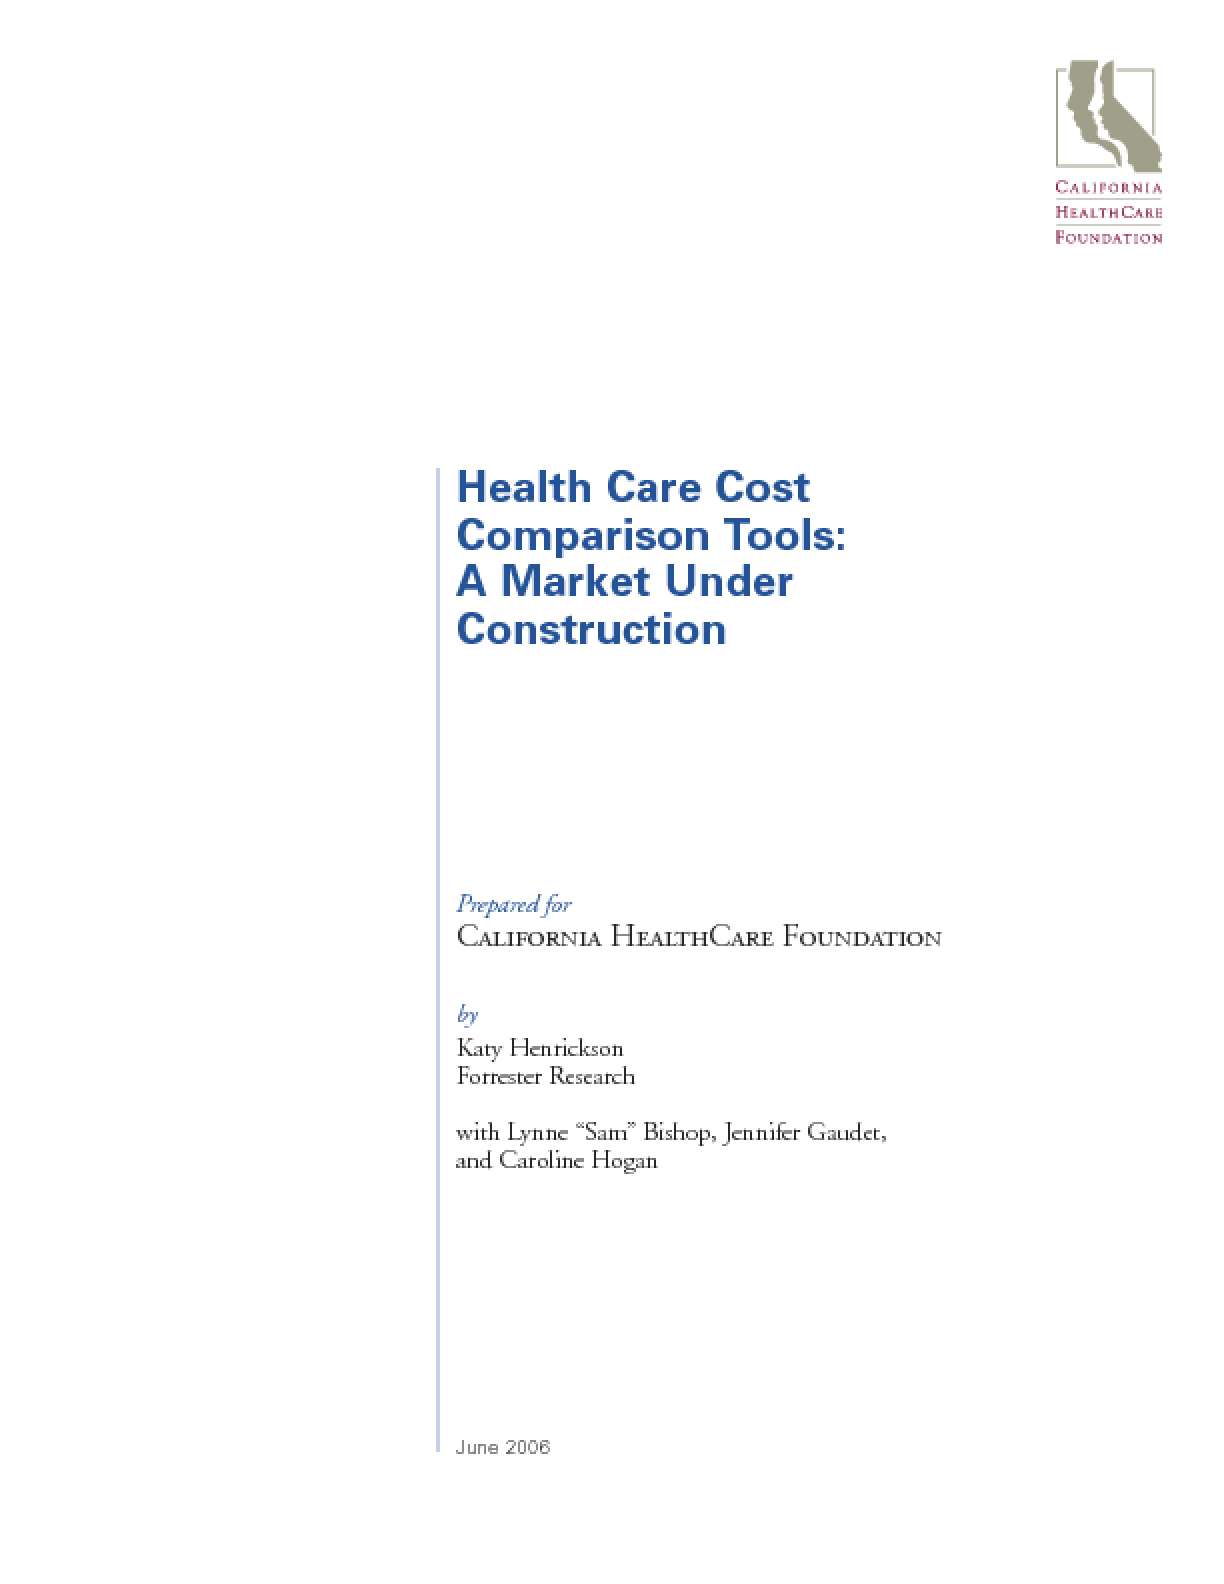 Health Care Cost Comparison Tools: A Market Under Construction